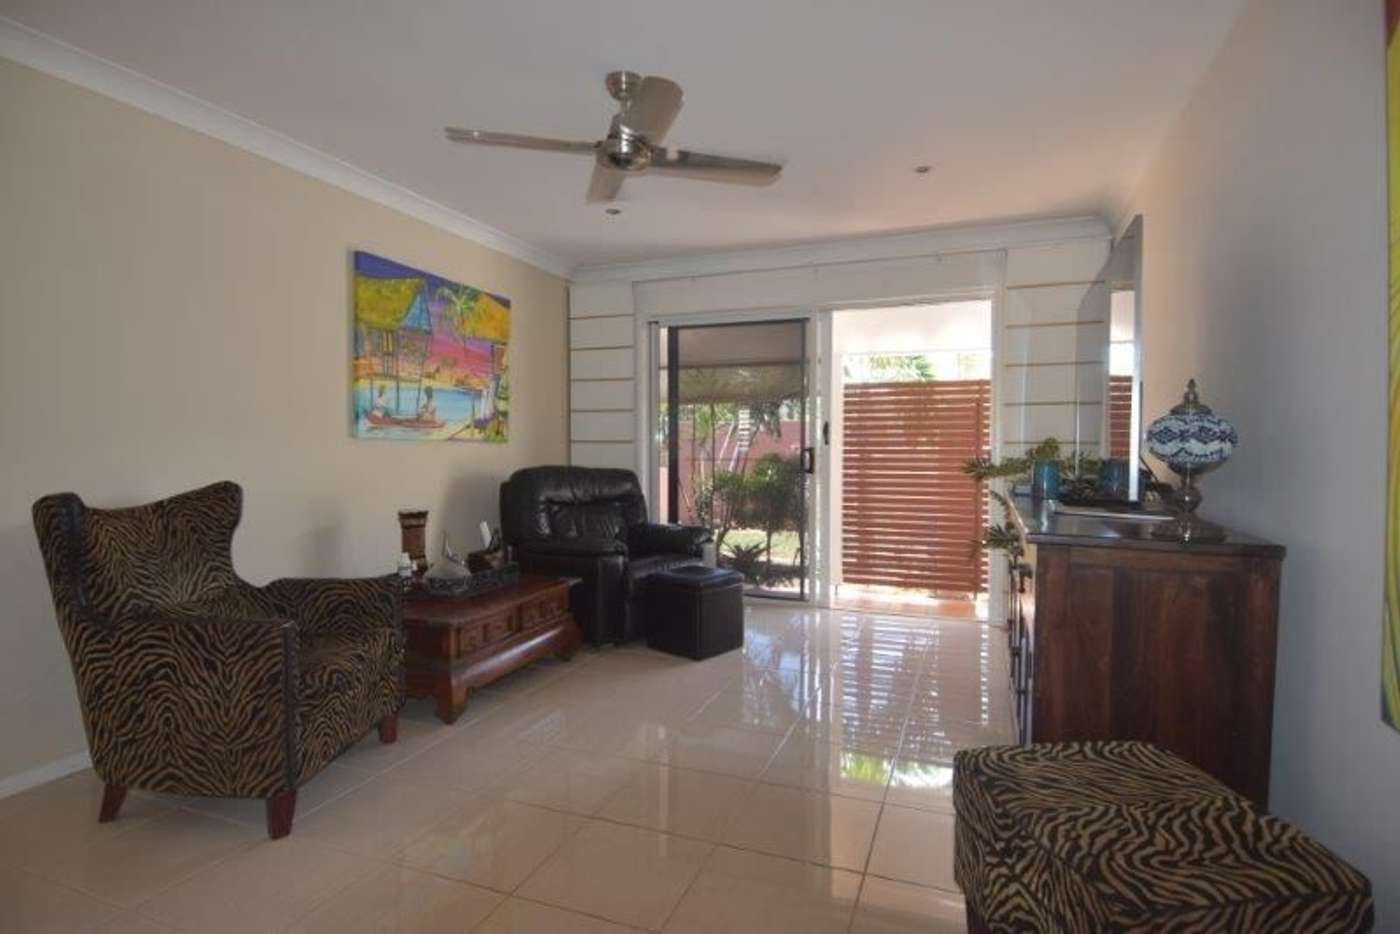 Sixth view of Homely house listing, 6 Hilliar St, Wongaling Beach QLD 4852